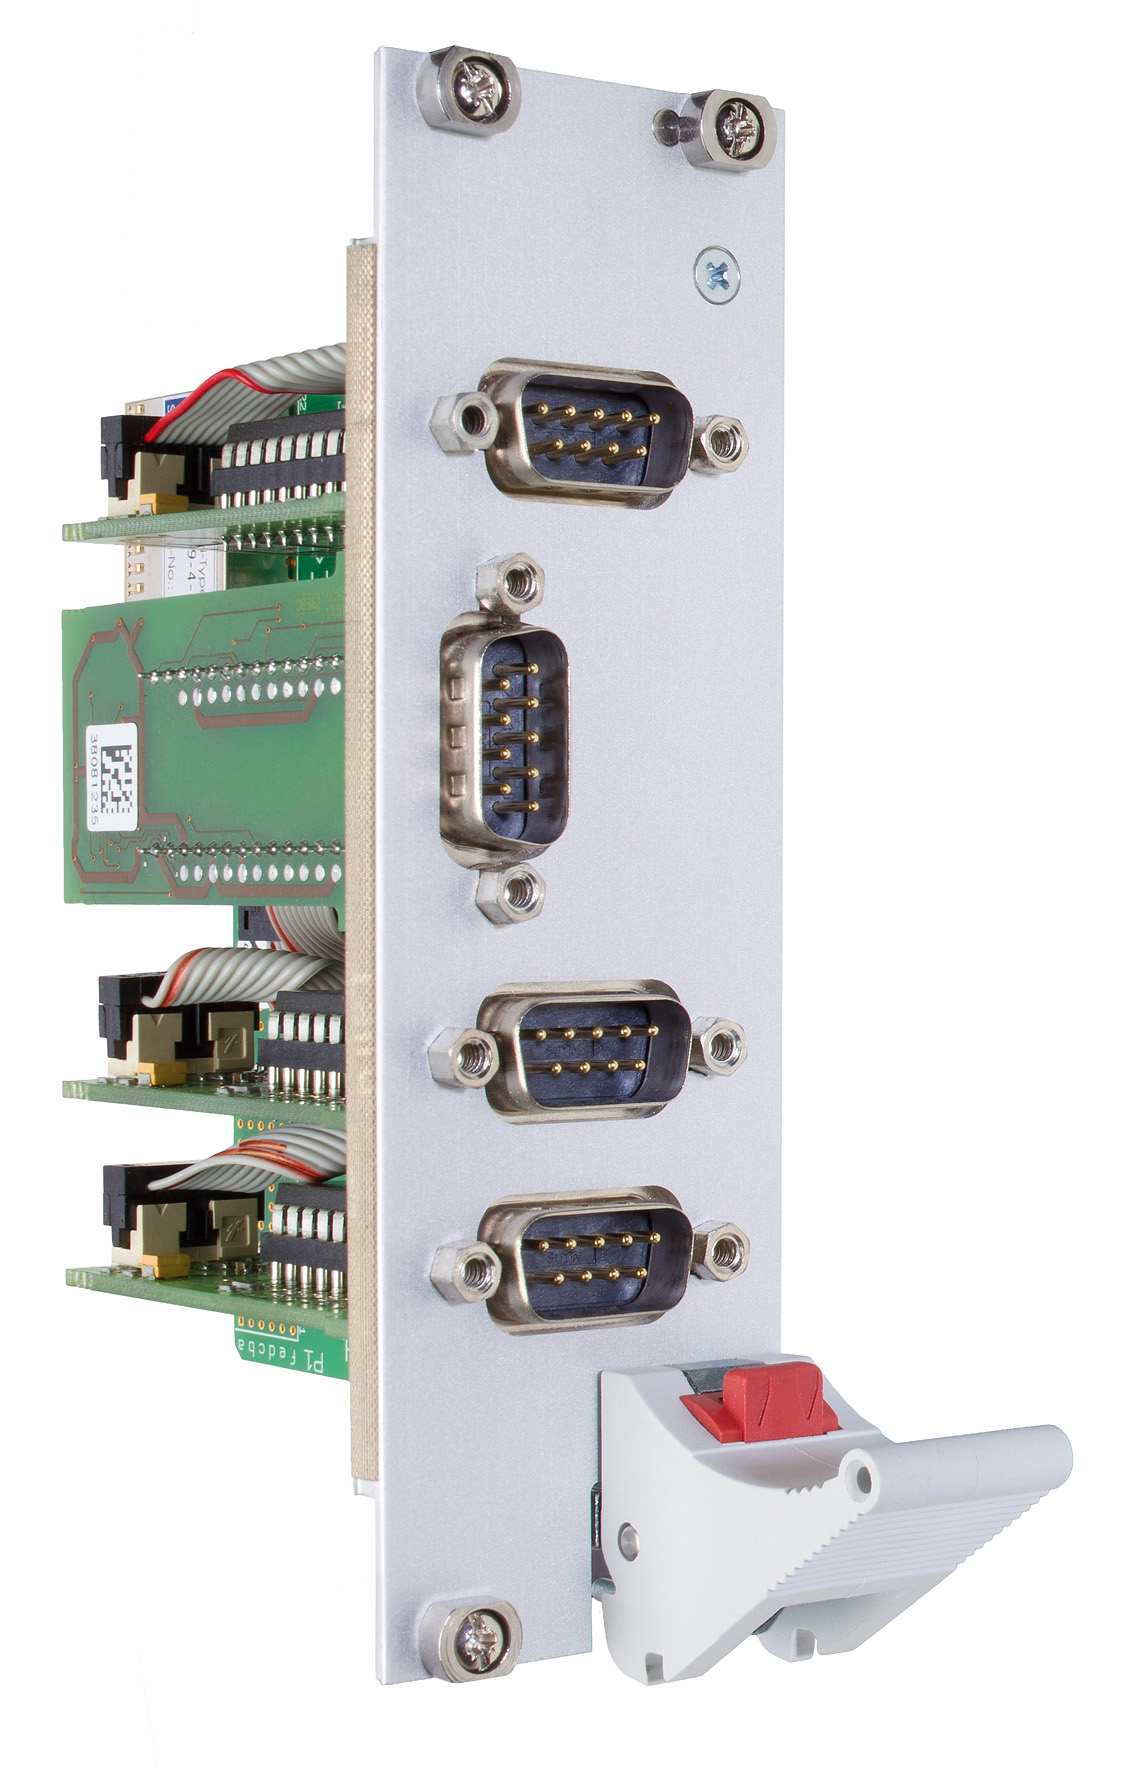 Ekf Compactpci Products Cu7 Rs485 Isolated Rs 485 Rear I O Module 2 Wire Wiring Diagram 1 3 4